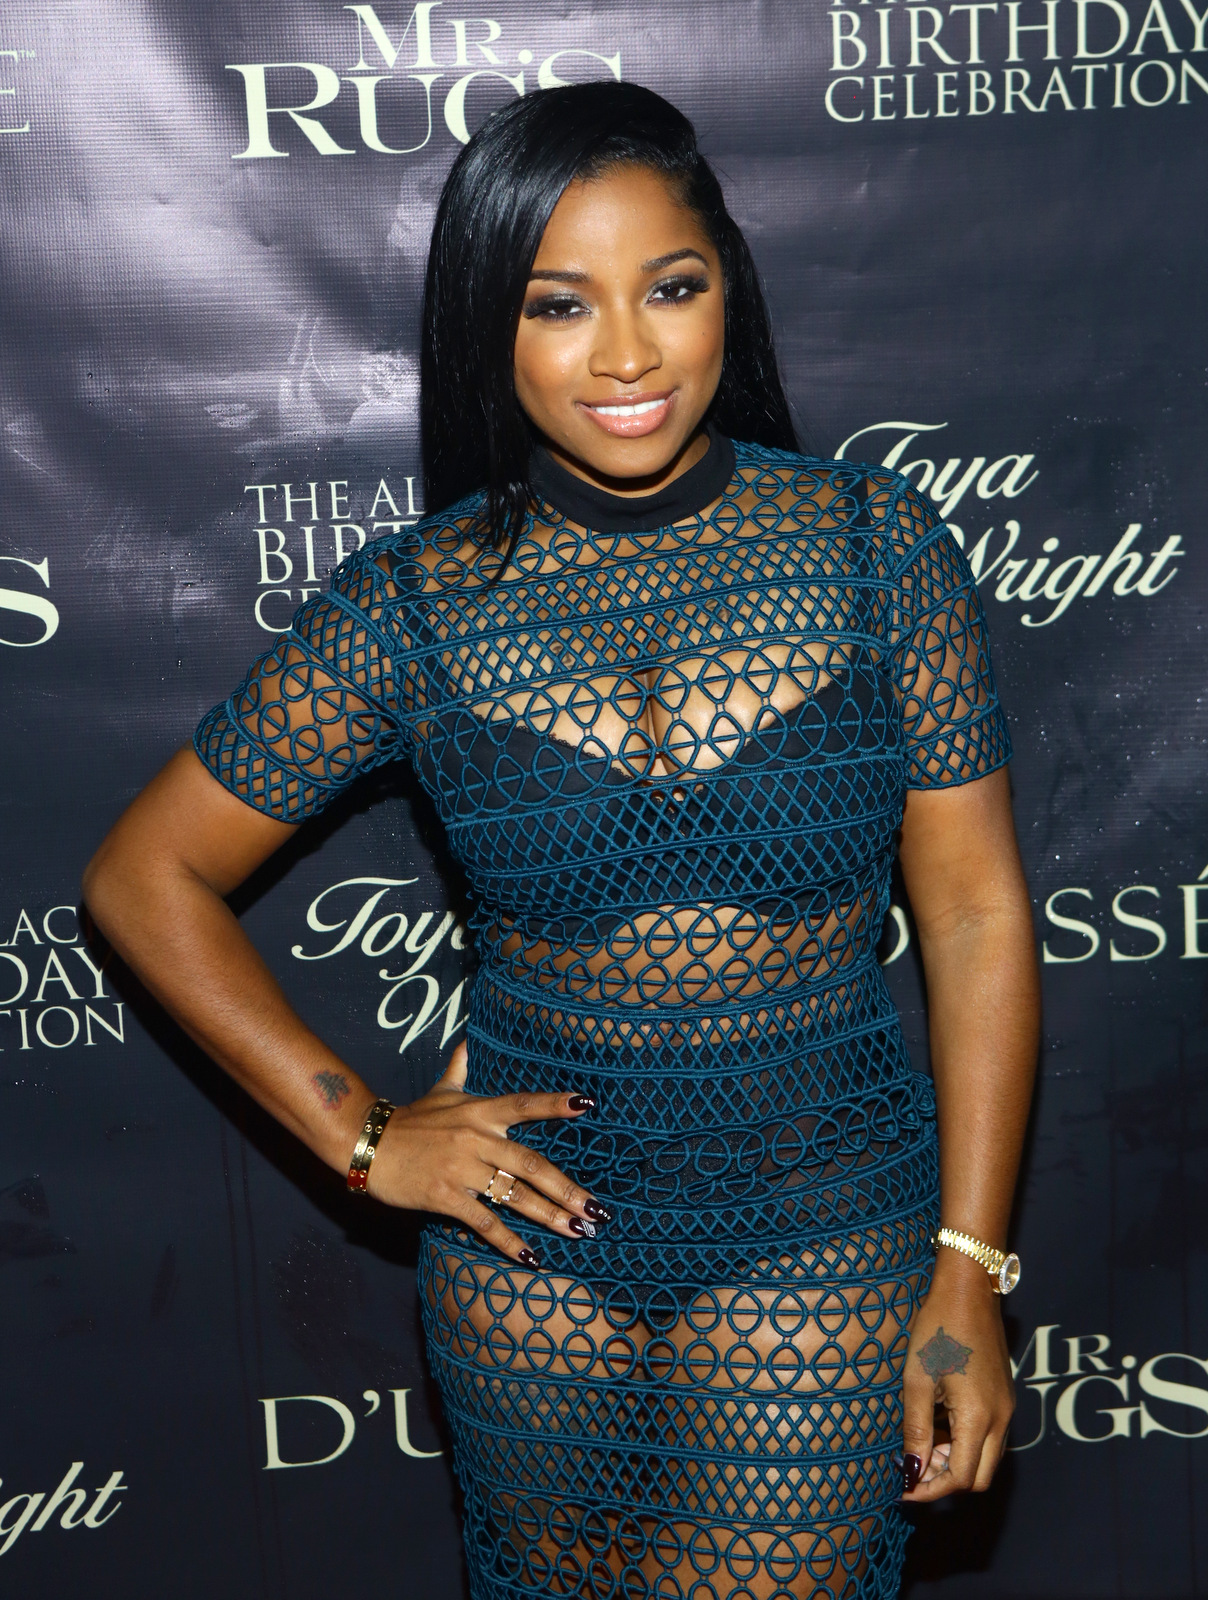 All Black Affair For Mr Rugs U0026 Toya Wright Birthday Celebration